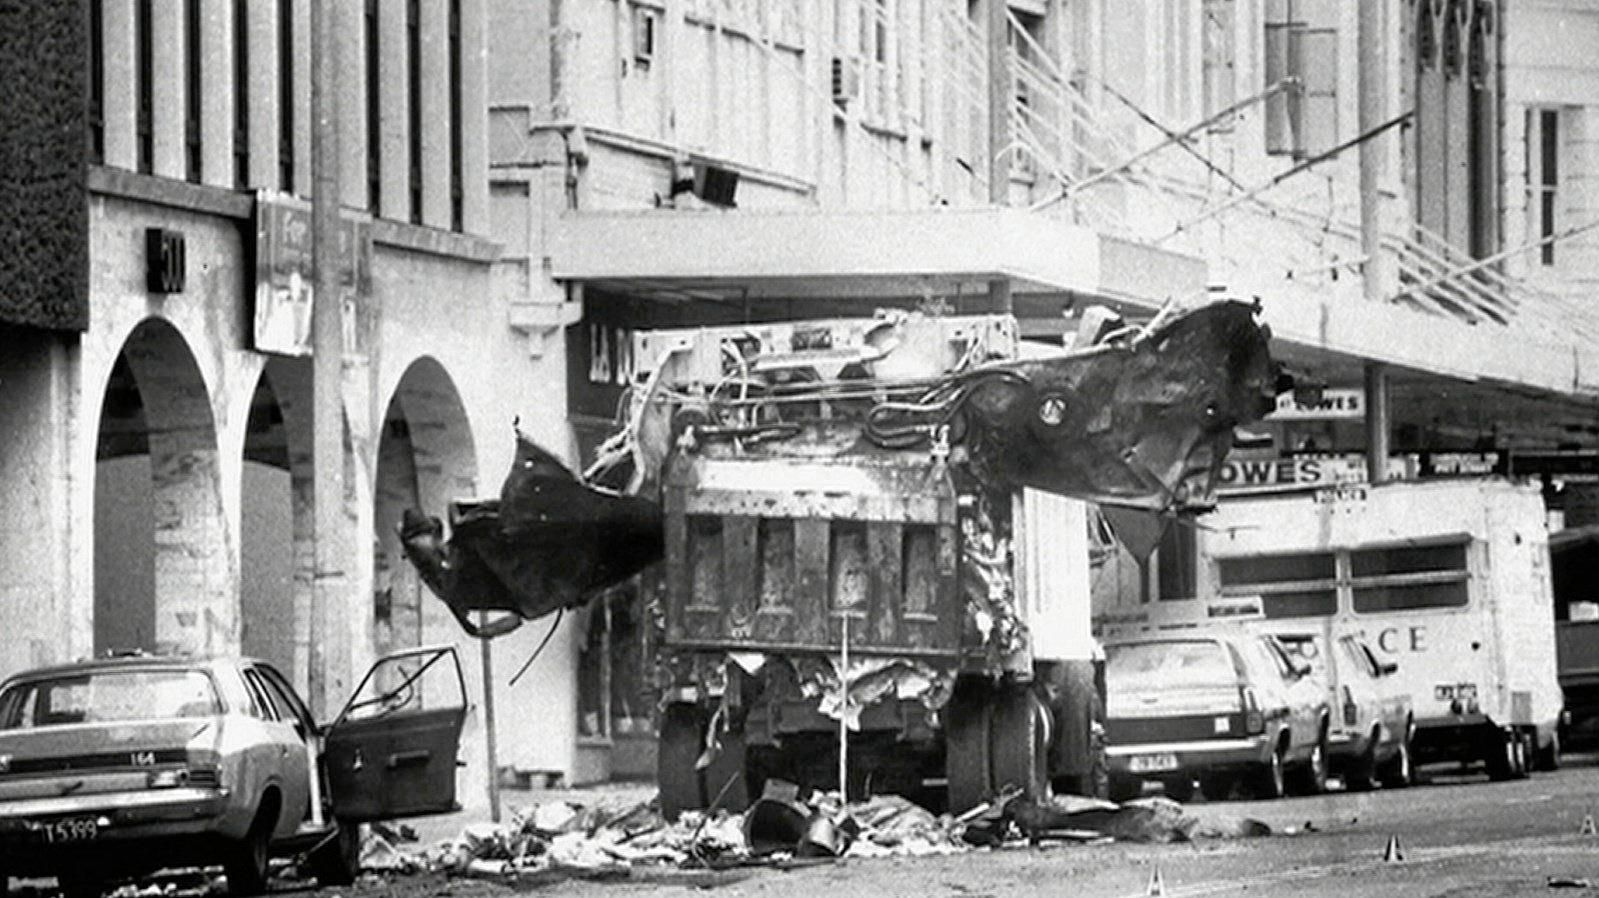 The Sydney Hilton bombing occurred on 13 February 1978, when a bomb exploded outside the Hilton Hotel in Sydney. The bomb was planted in a rubbish bin and exploded when the bin was emptied into a garbage truck outside the hotel at 1.40am. It killed two garbage collectors, Alec Carter and William Favell.